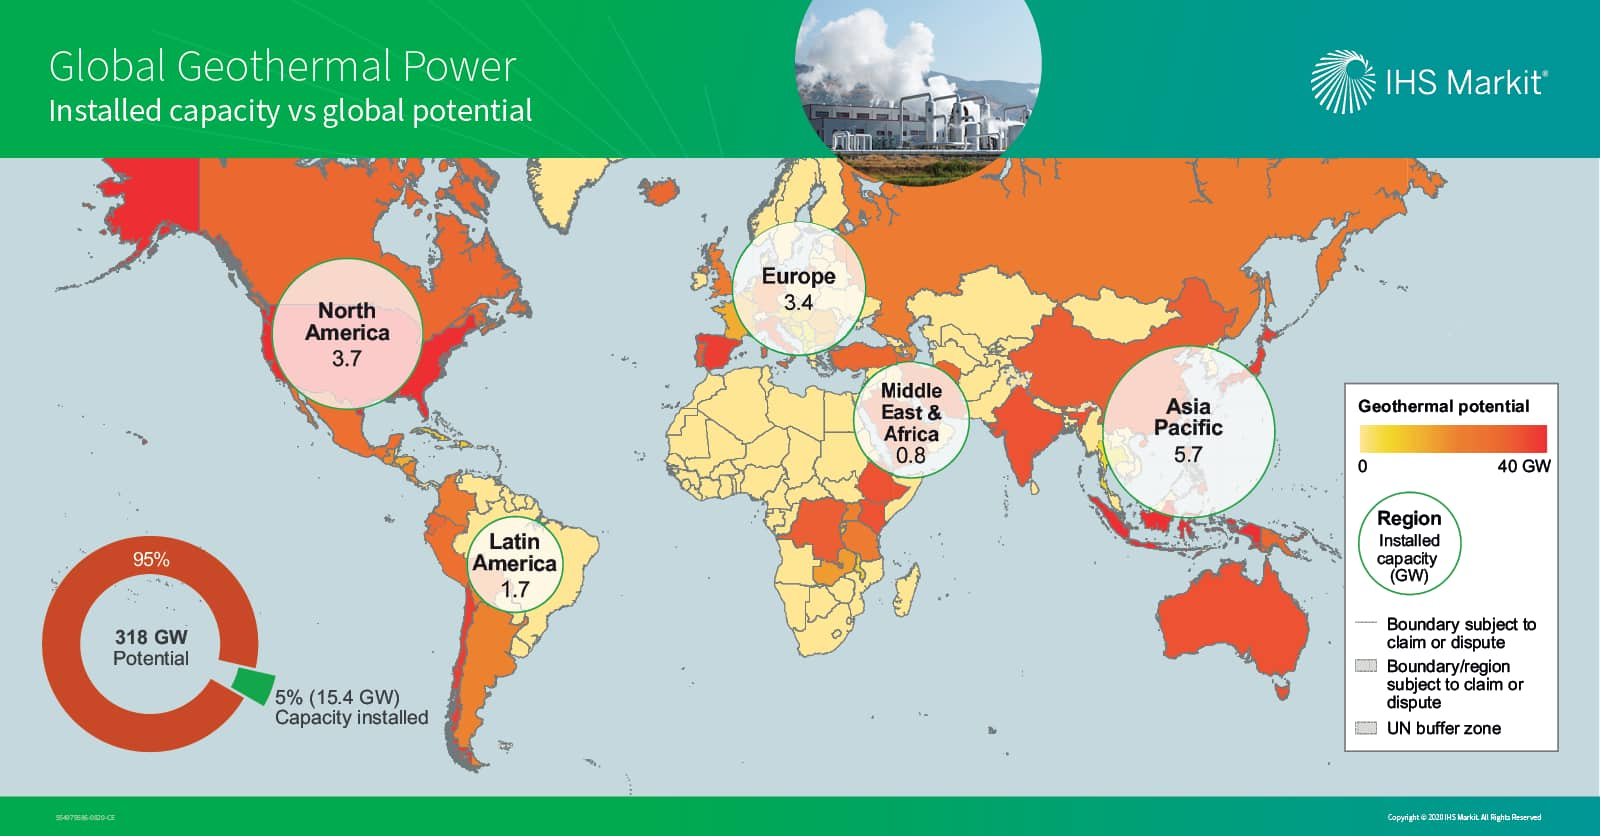 Global Geothermal Power - Installed capacity vs global potential